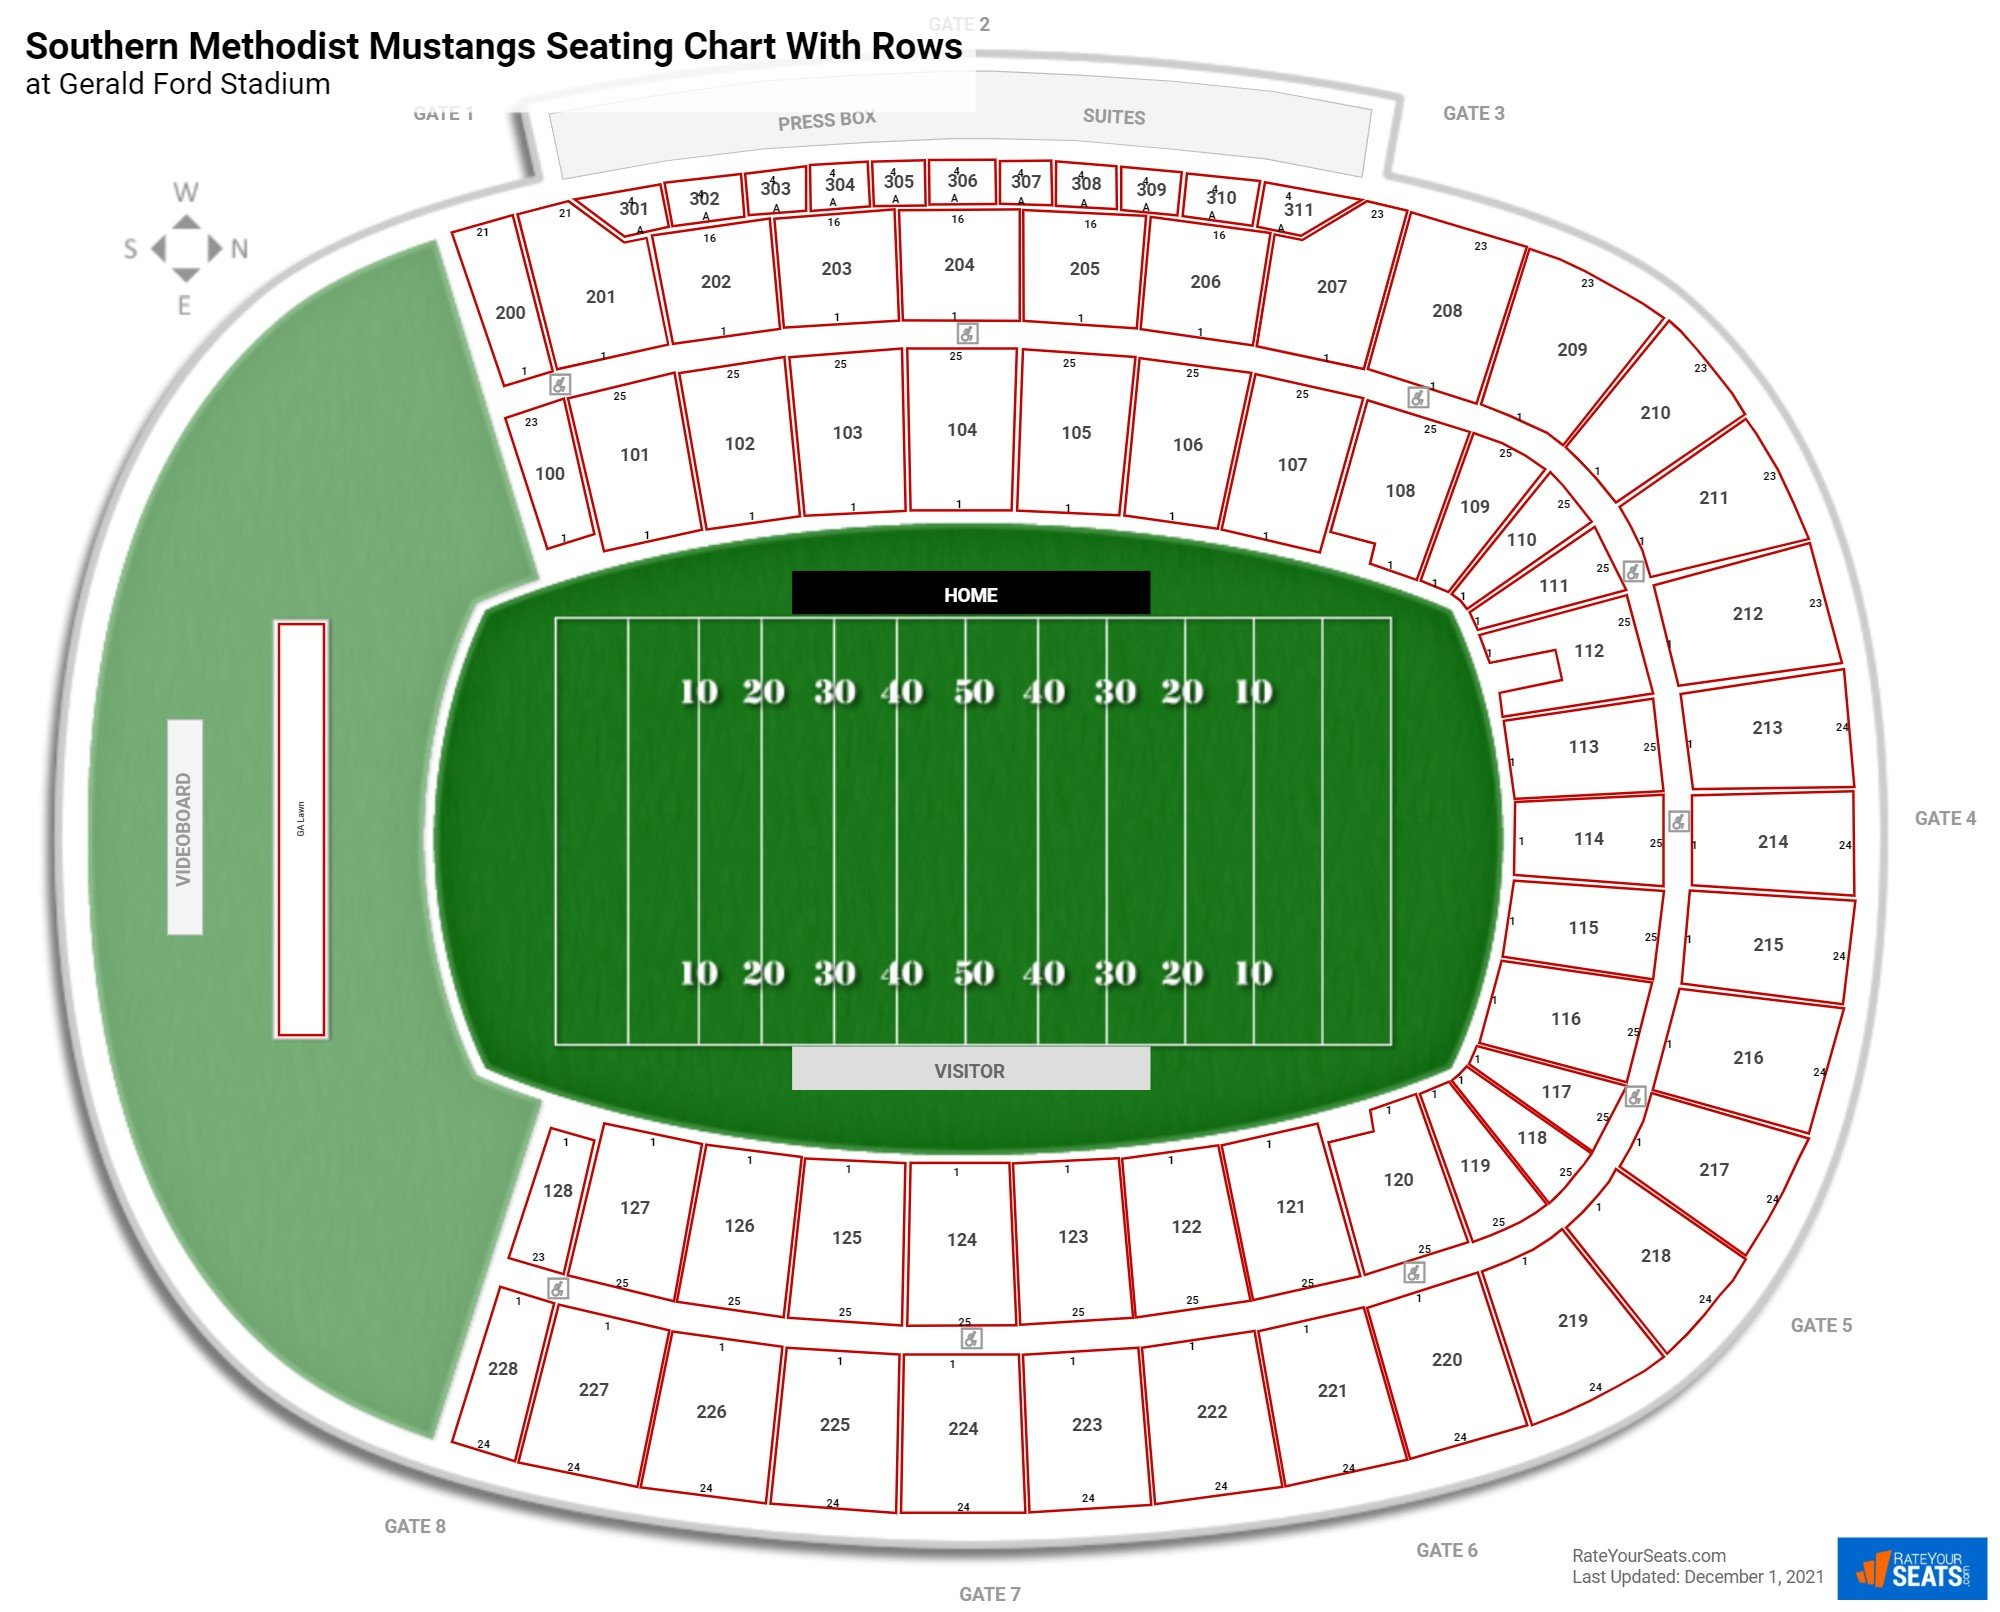 Gerald Ford Stadium seating chart with rows